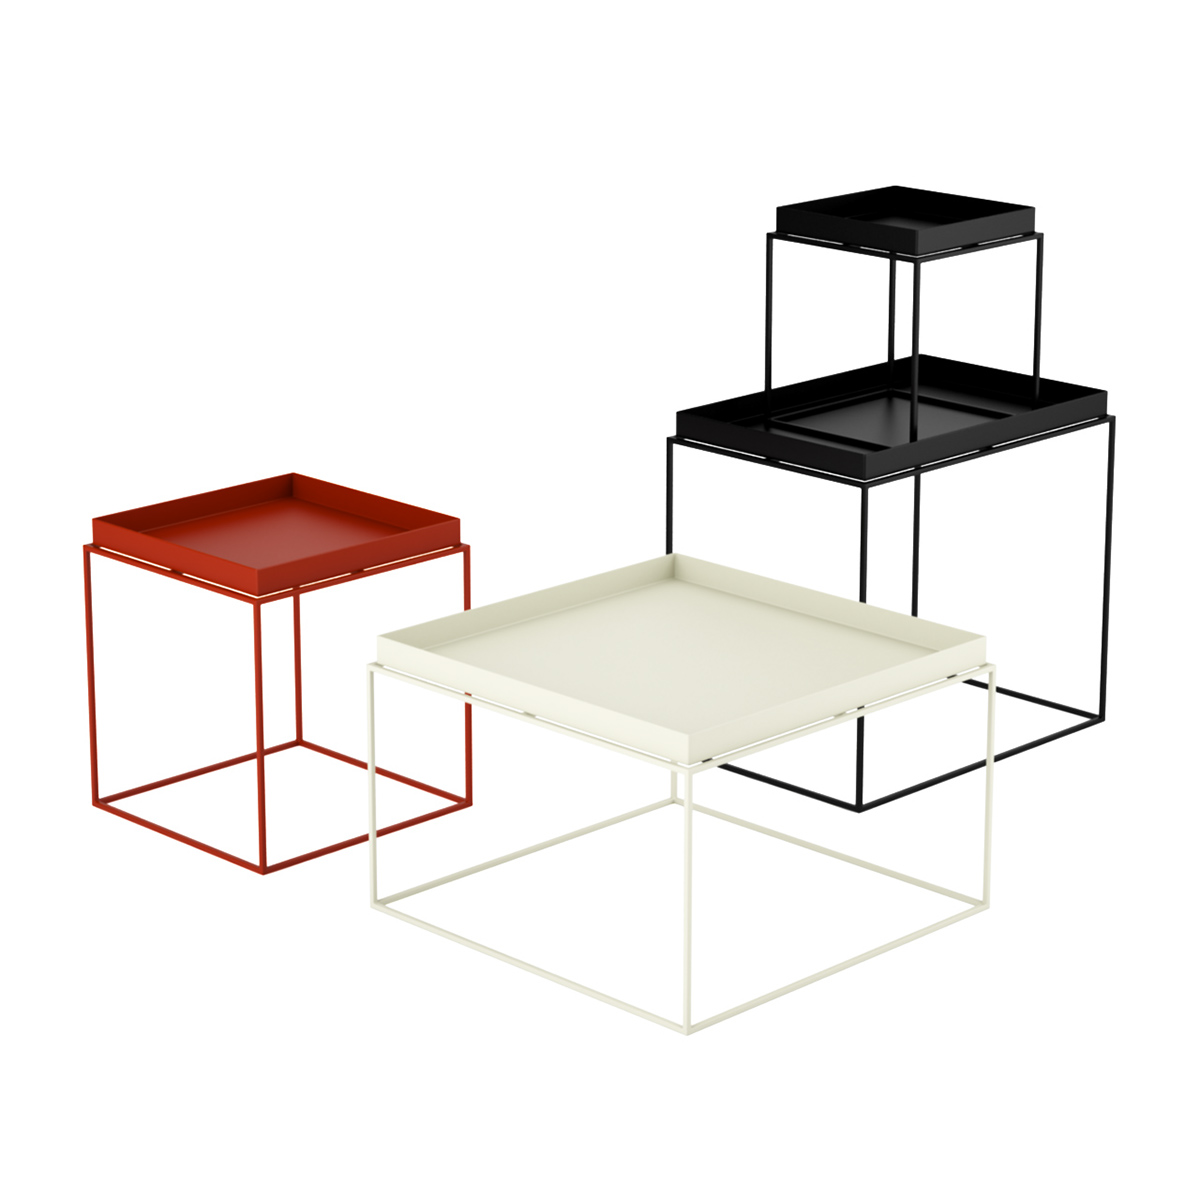 Free 3d Model: Tray Table By Hay On Behance